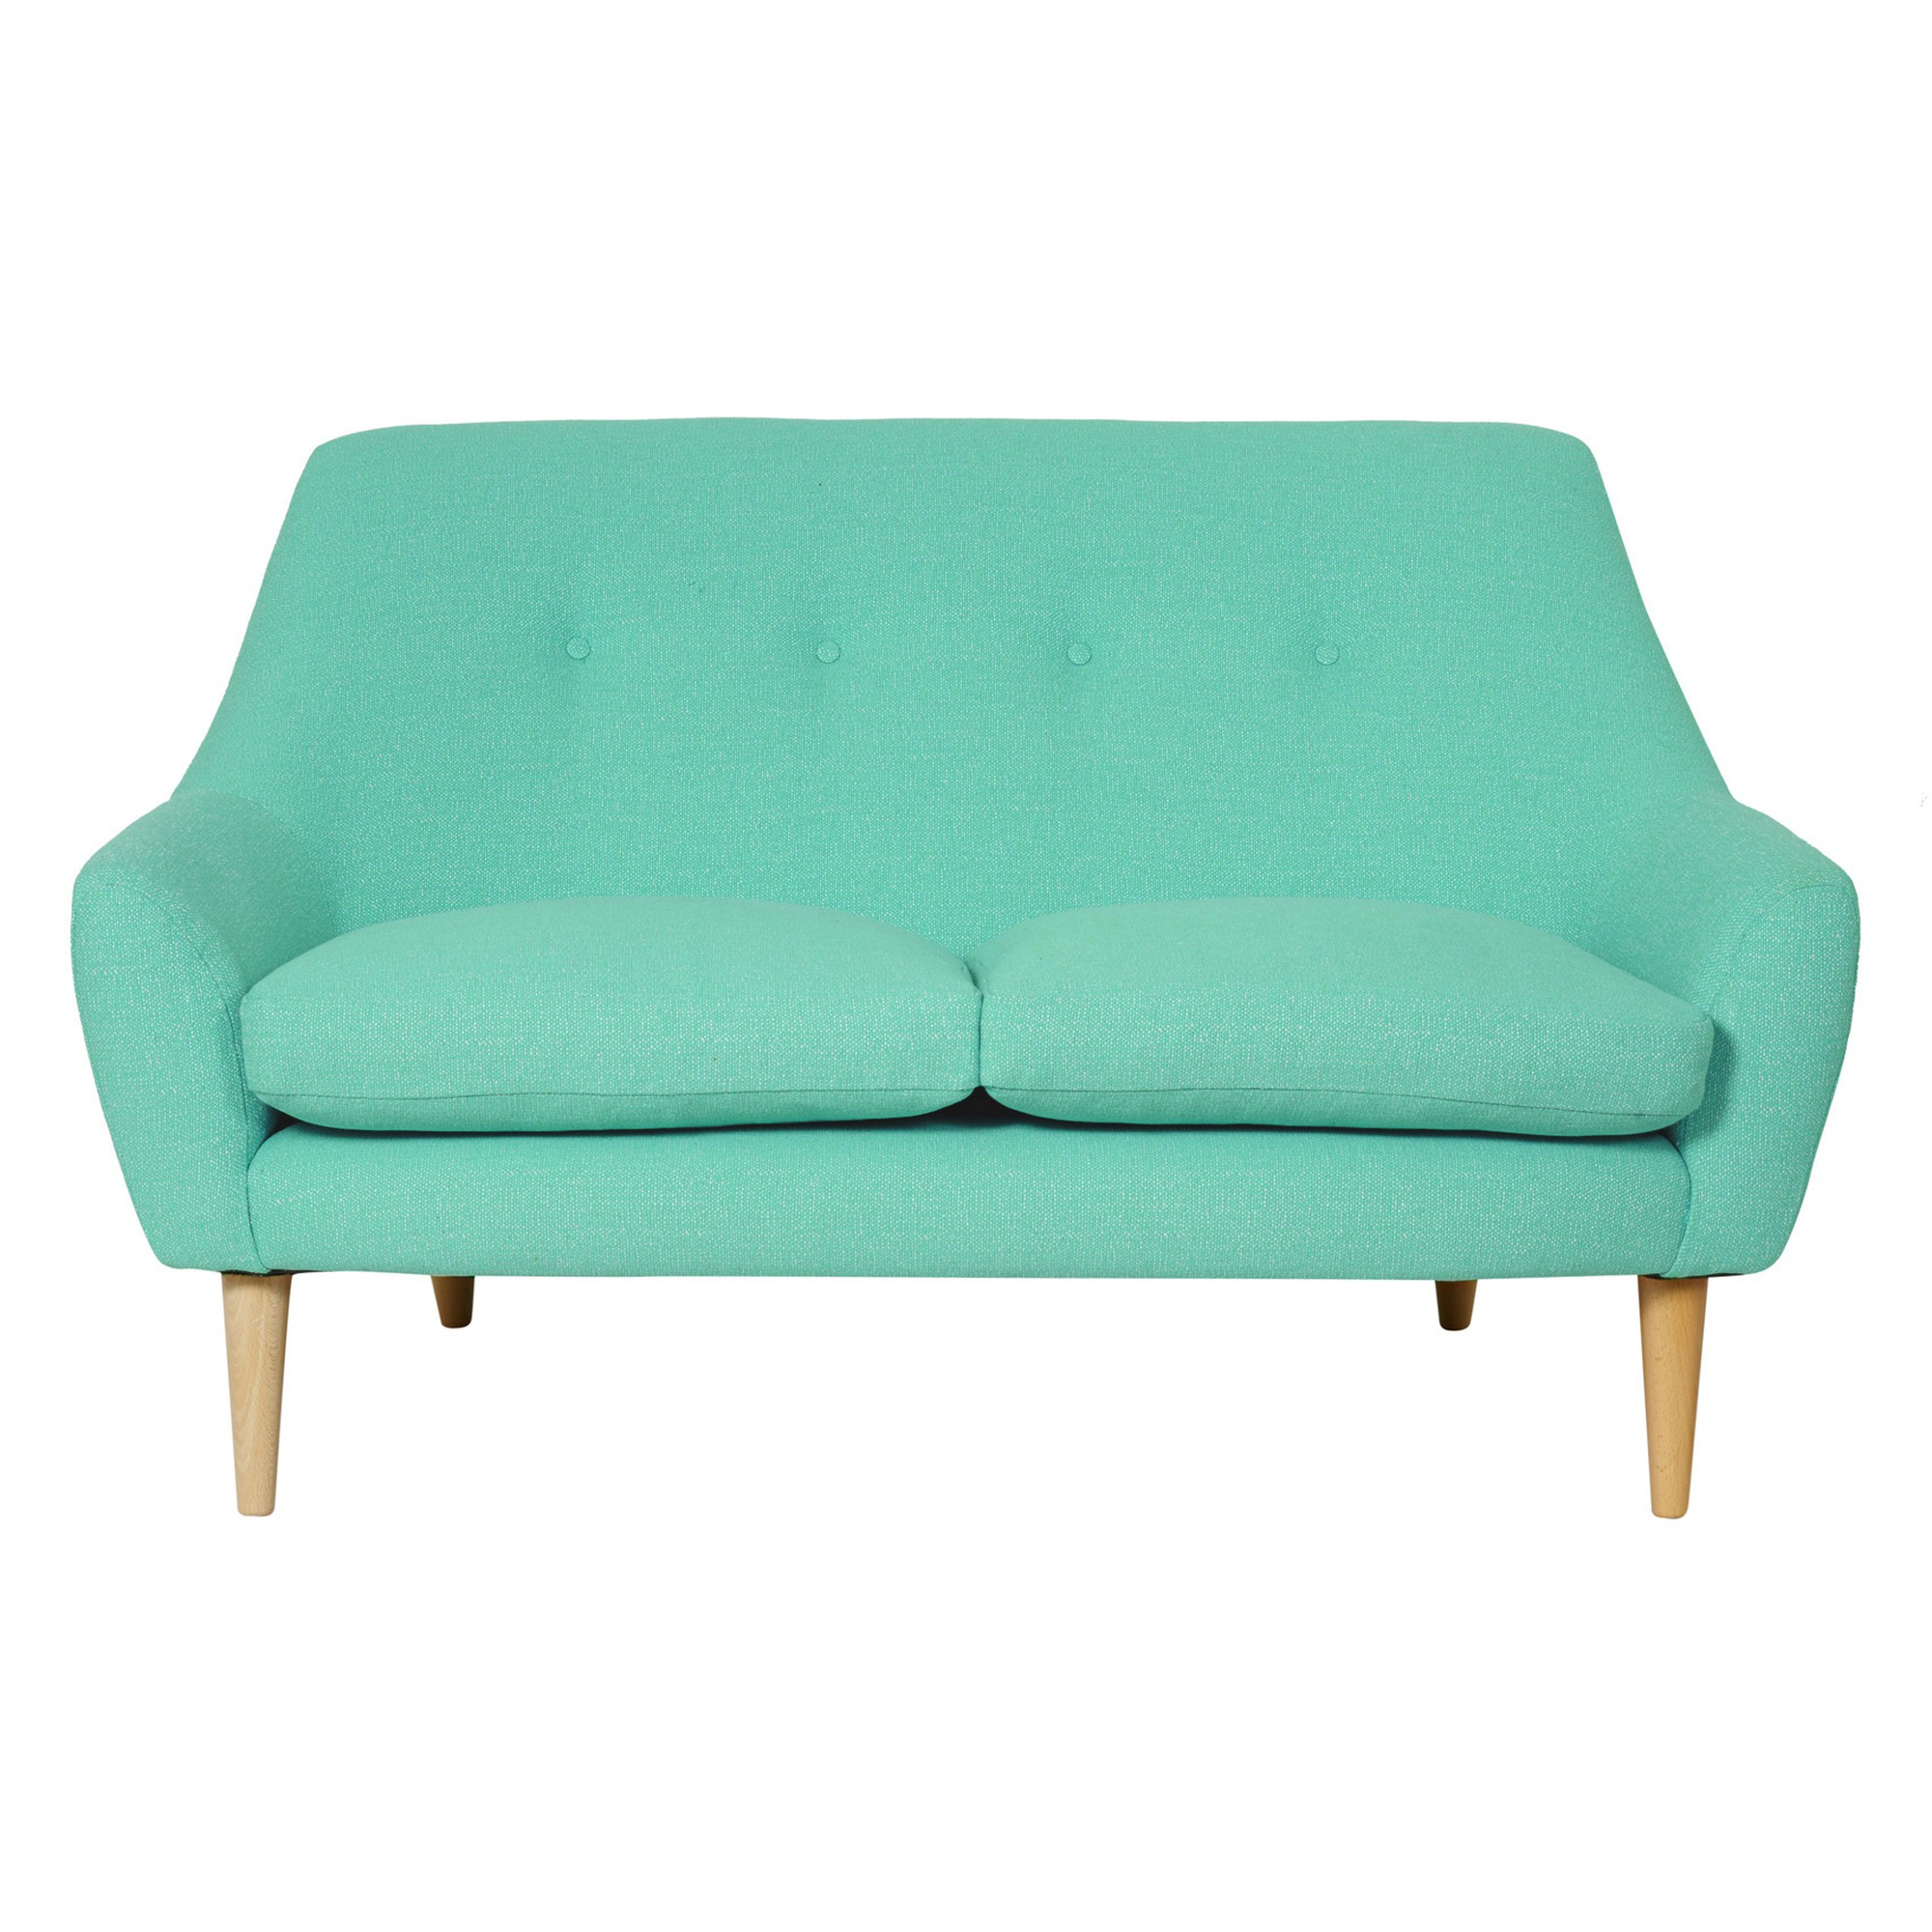 John Lewis Melrose Sofa Small Sofas Slim 2 Seater Settee Loveseat Snuggler Sofa Wide Armchairs